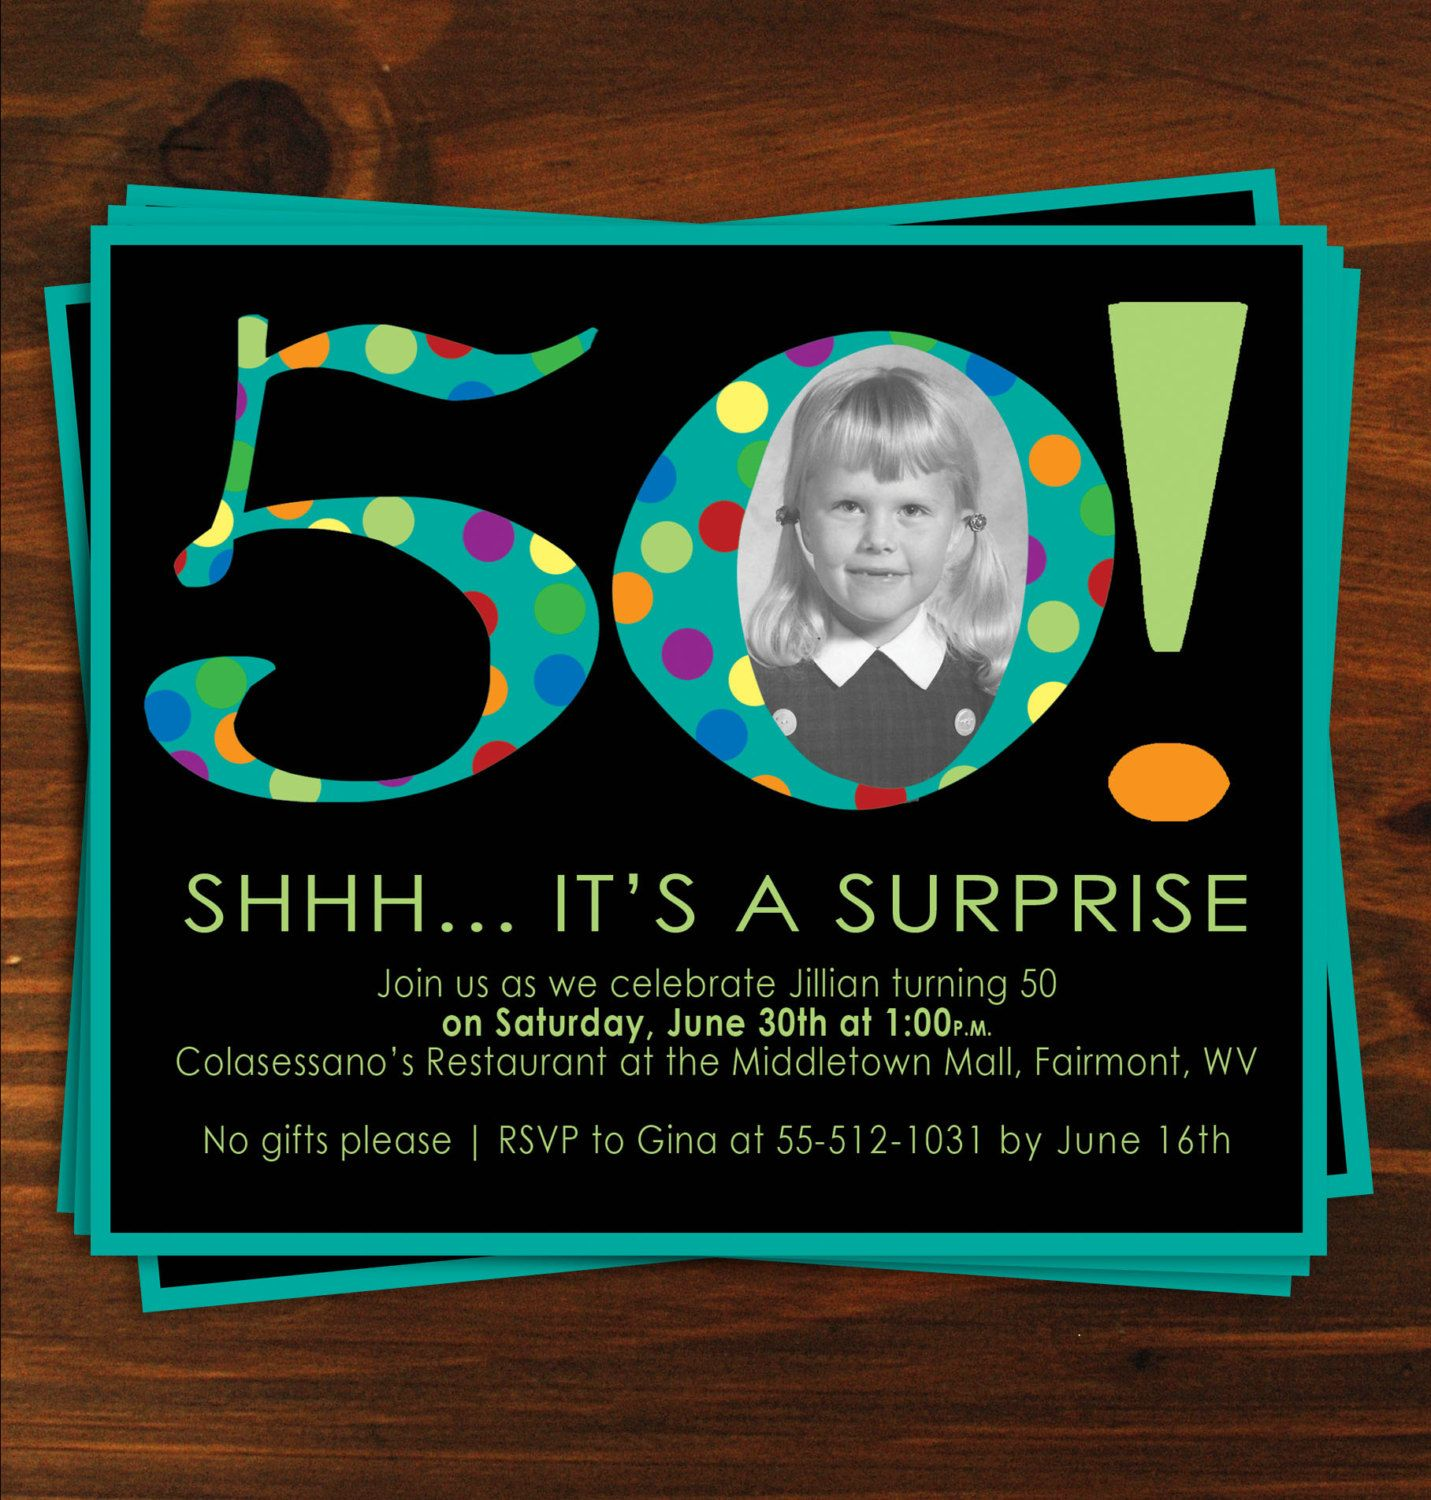 50th birthday party invitations ideas new invitations pinterest 50th birthday party invitations ideas stopboris Gallery